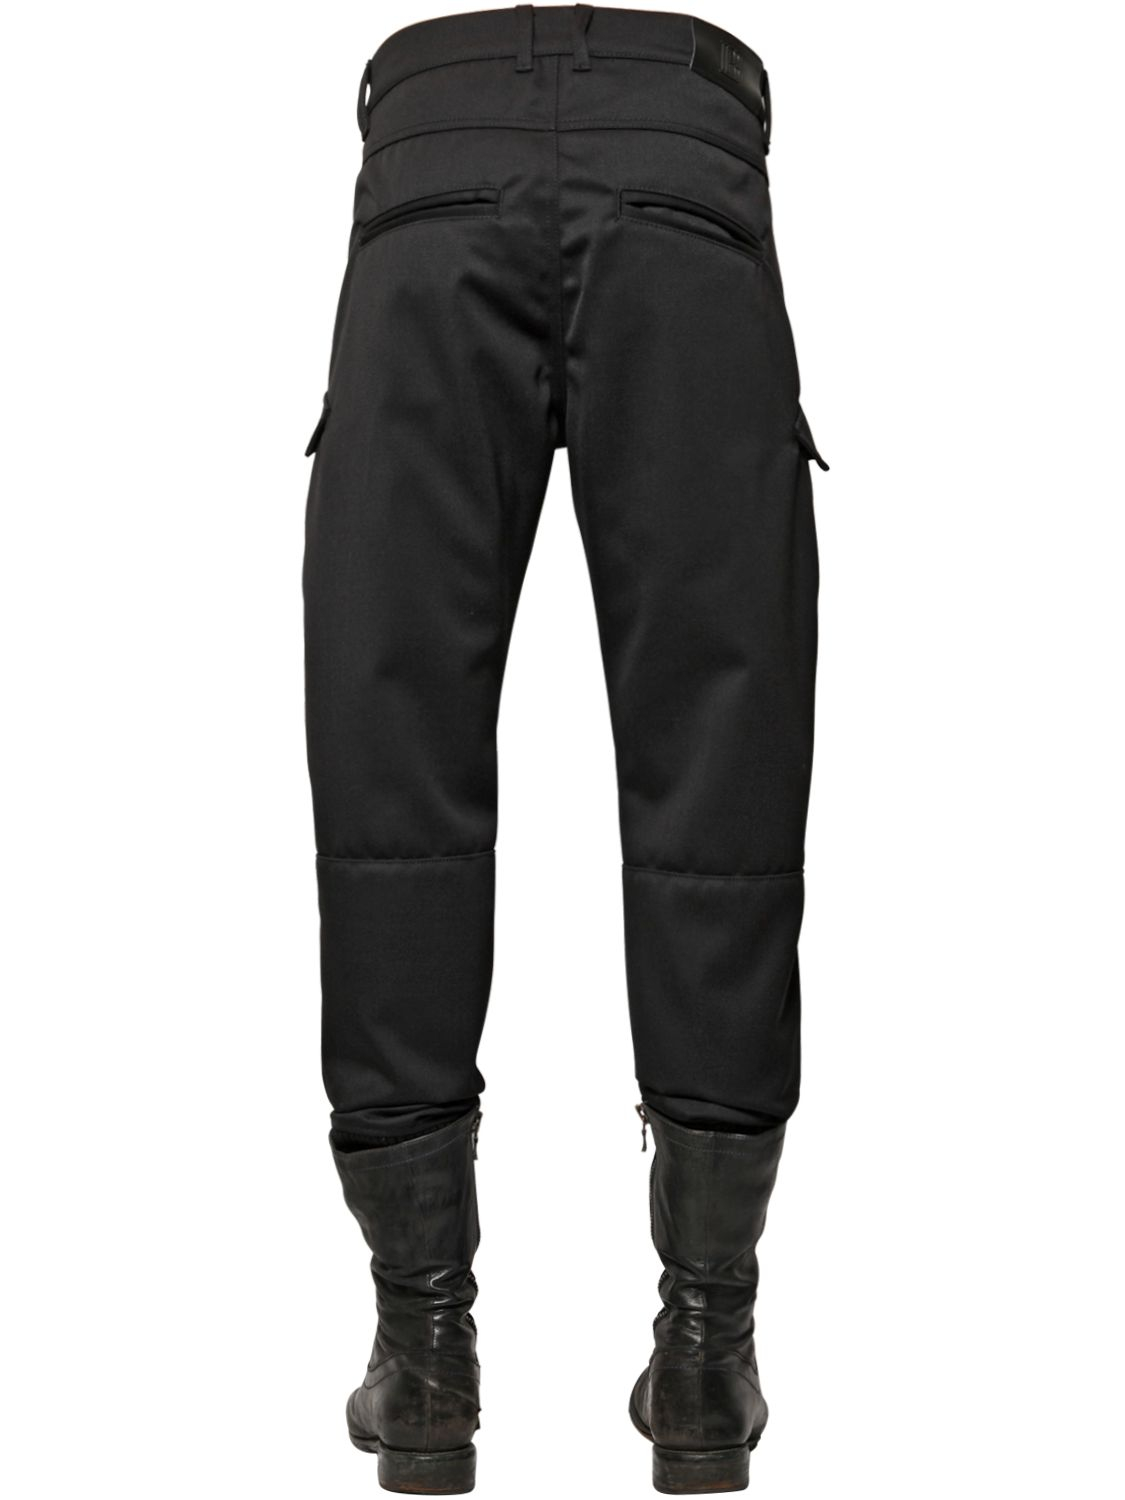 Compare Men's Flexpedition Cargo Pants QuickView. Stone. Men's DuluthFlex Fire Hose CoolMax Pants $ $ Clearance. Compare Men's DuluthFlex Fire Hose CoolMax Pants QuickView. Camel. Men's Dry on the Fly Cargo Pants $ Compare Men's Dry on the Fly Cargo Pants QuickView.